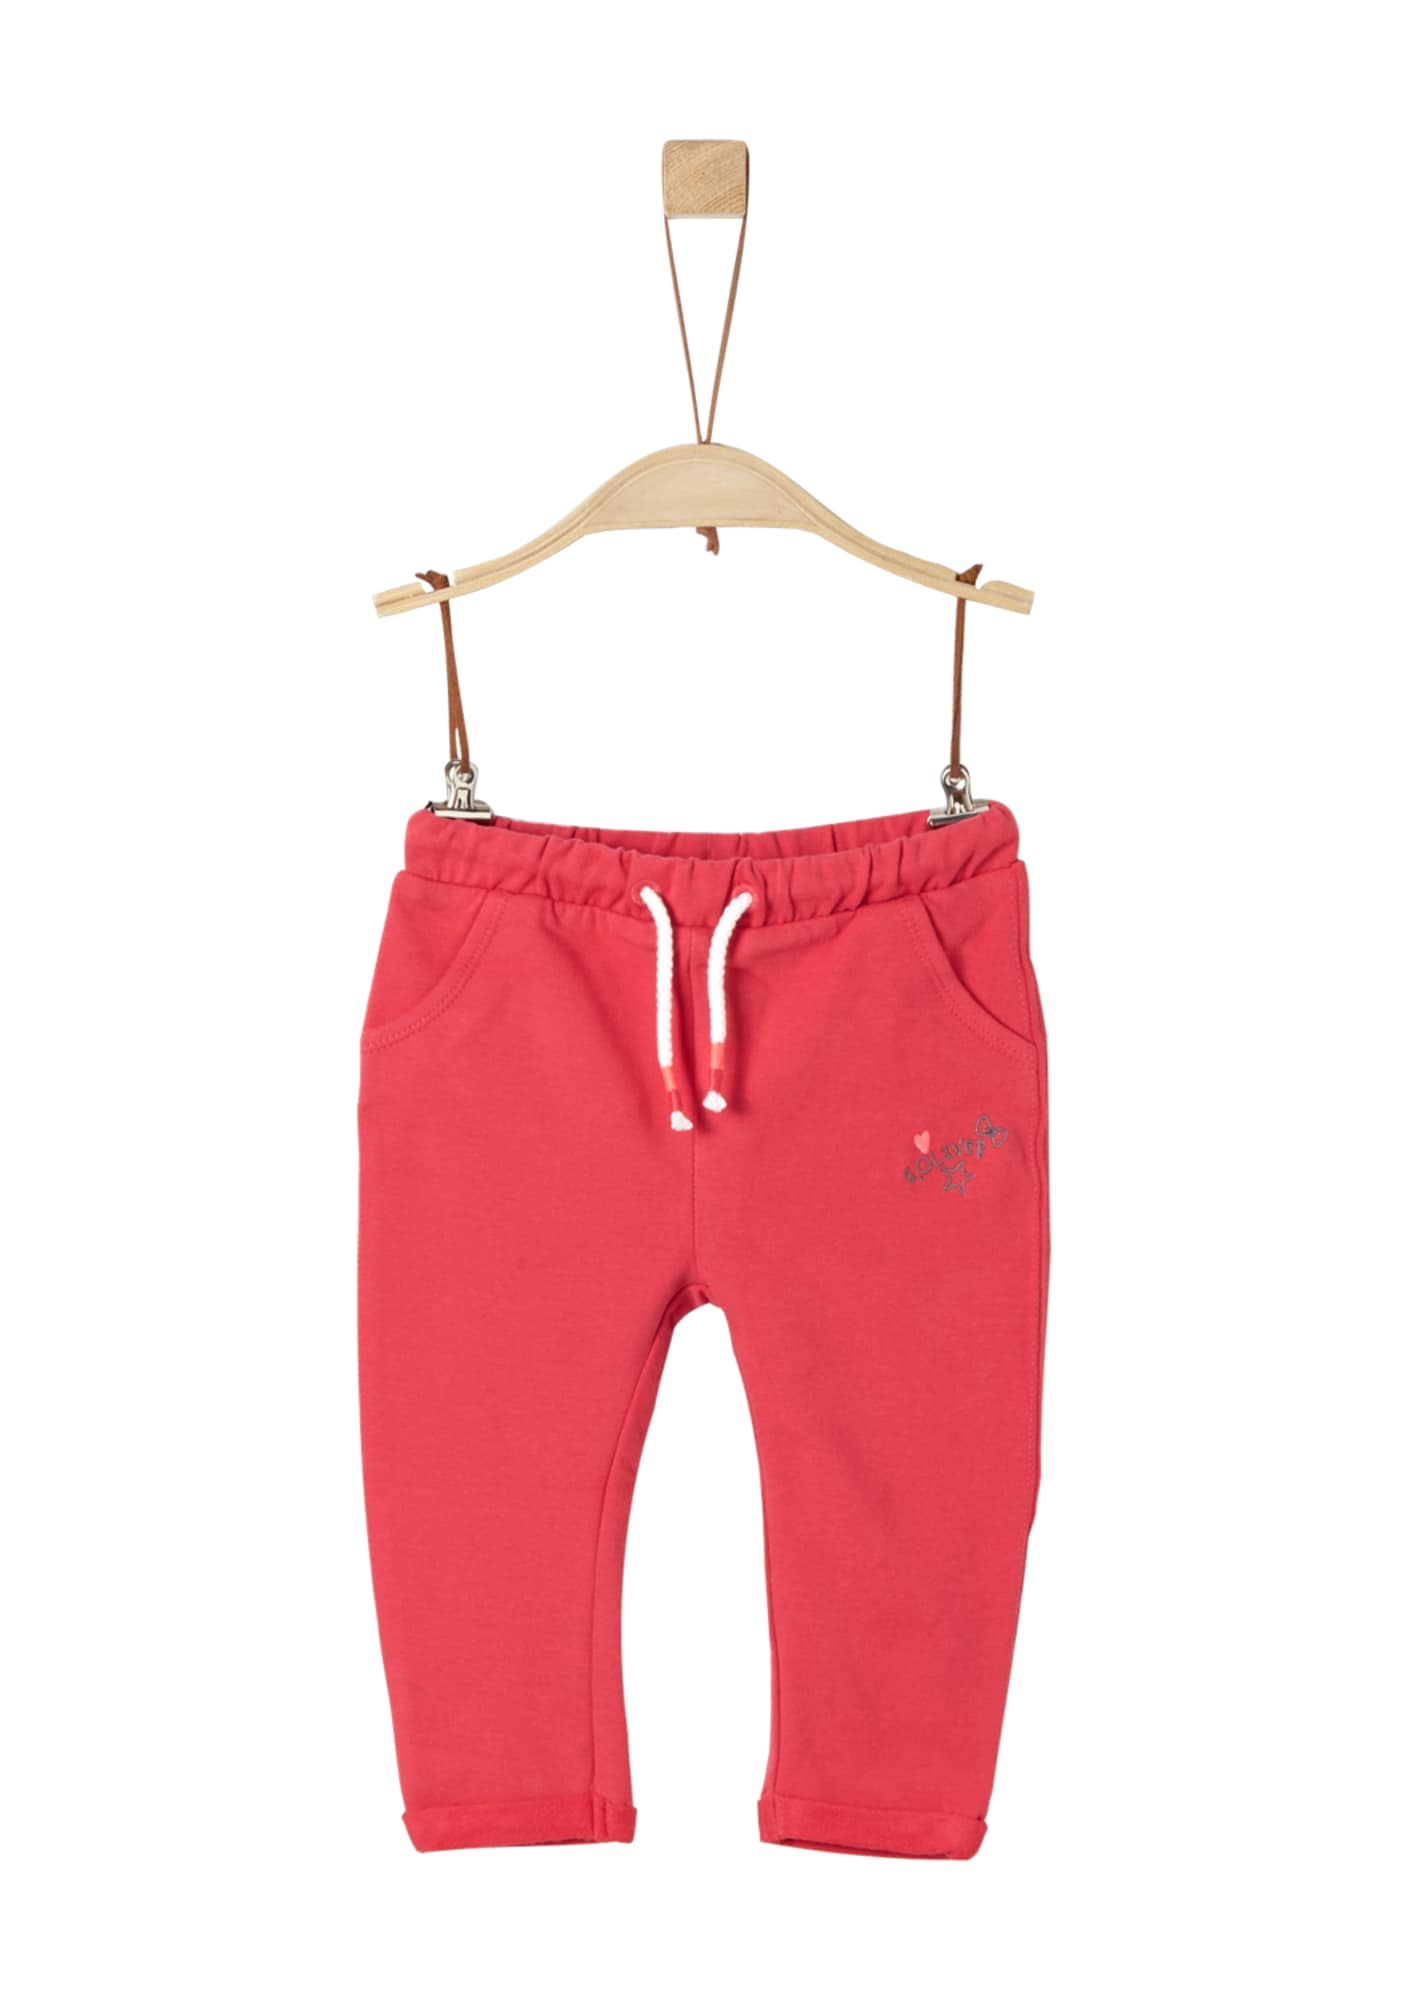 Babyhosen - Pants - Onlineshop ABOUT YOU